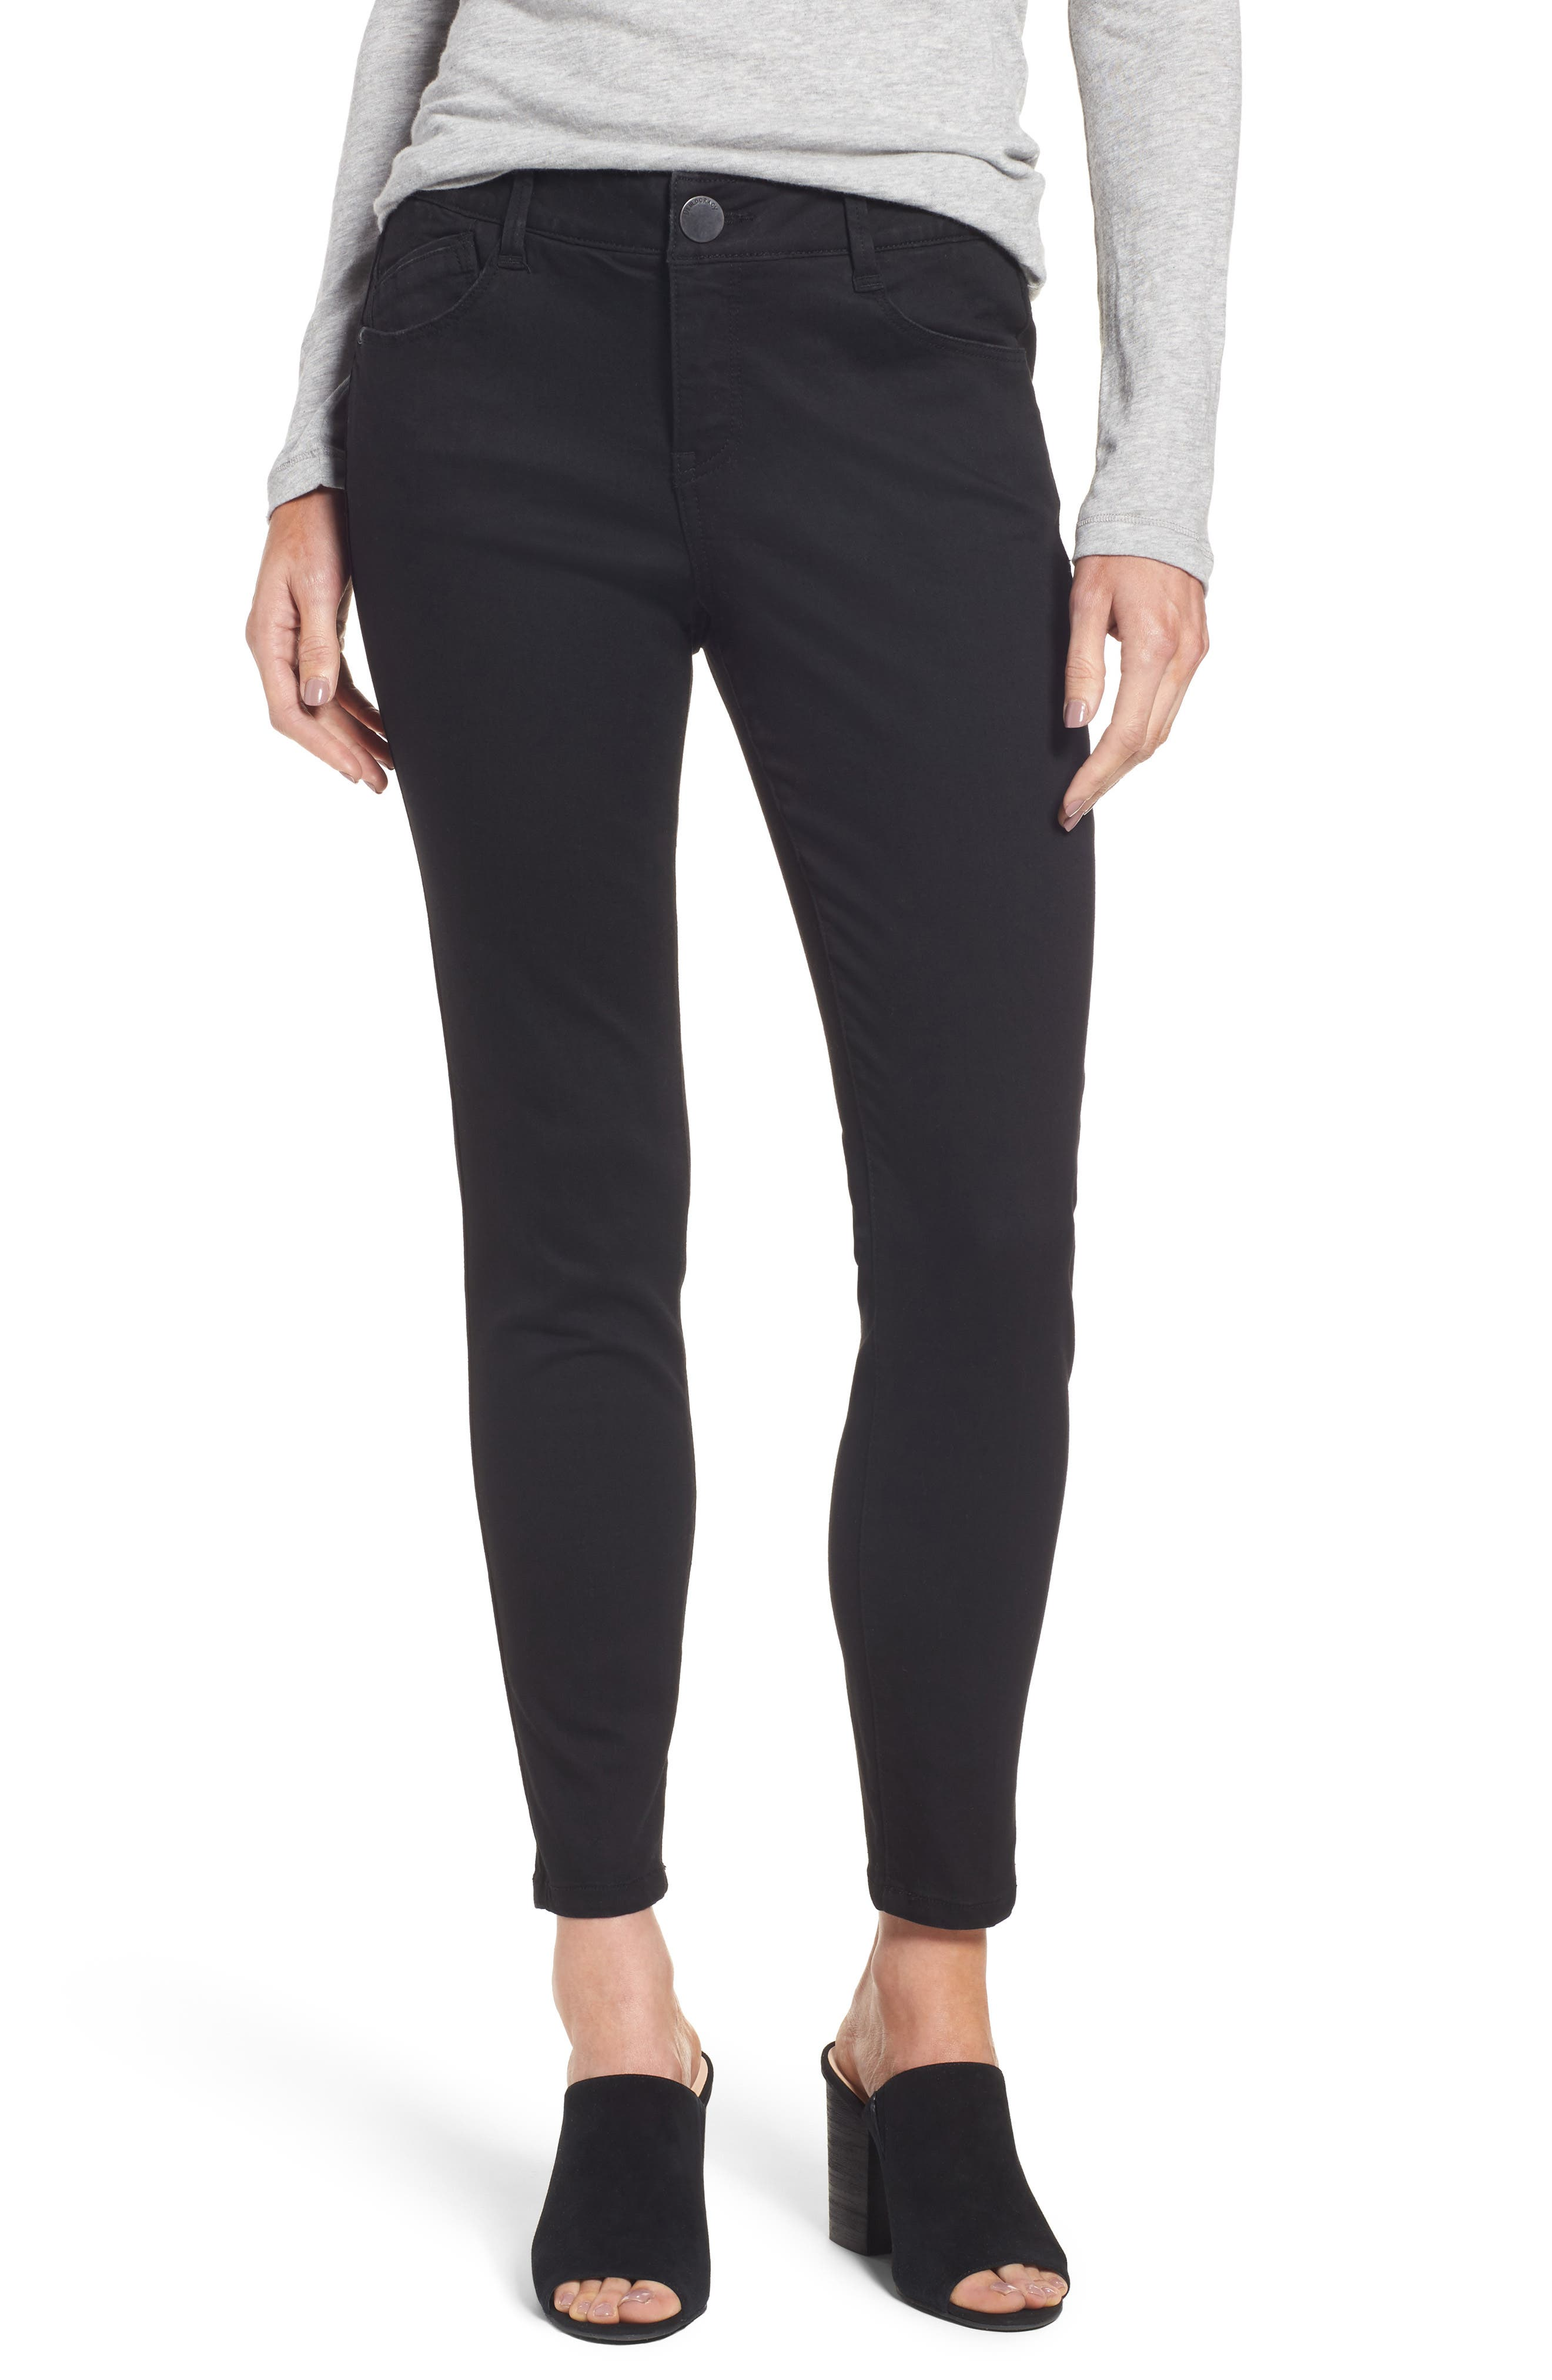 Ab-solution Stretch Ankle Skinny Jeans,                         Main,                         color, Black